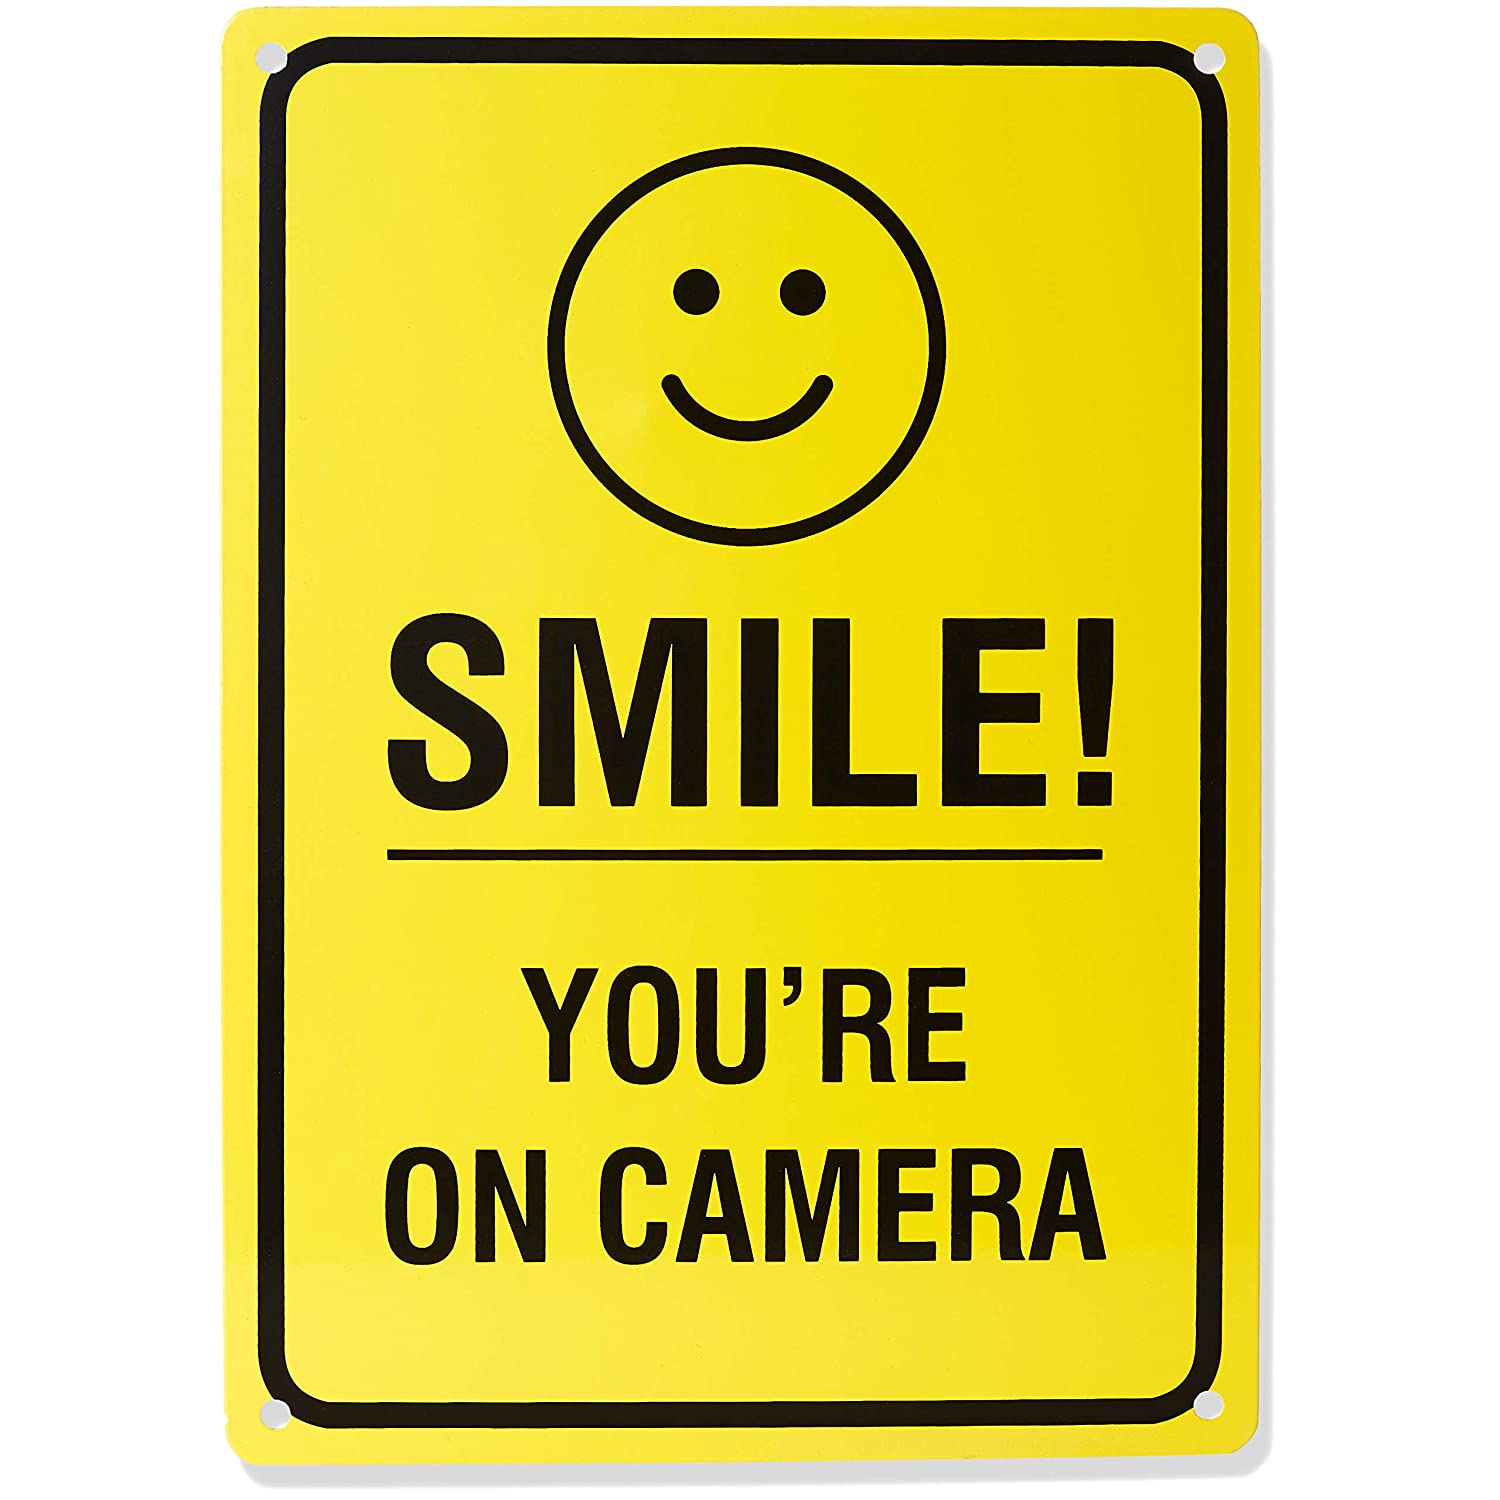 Notice Smile Your on Camera Security Sign and Fake Dome Camera with LED Light